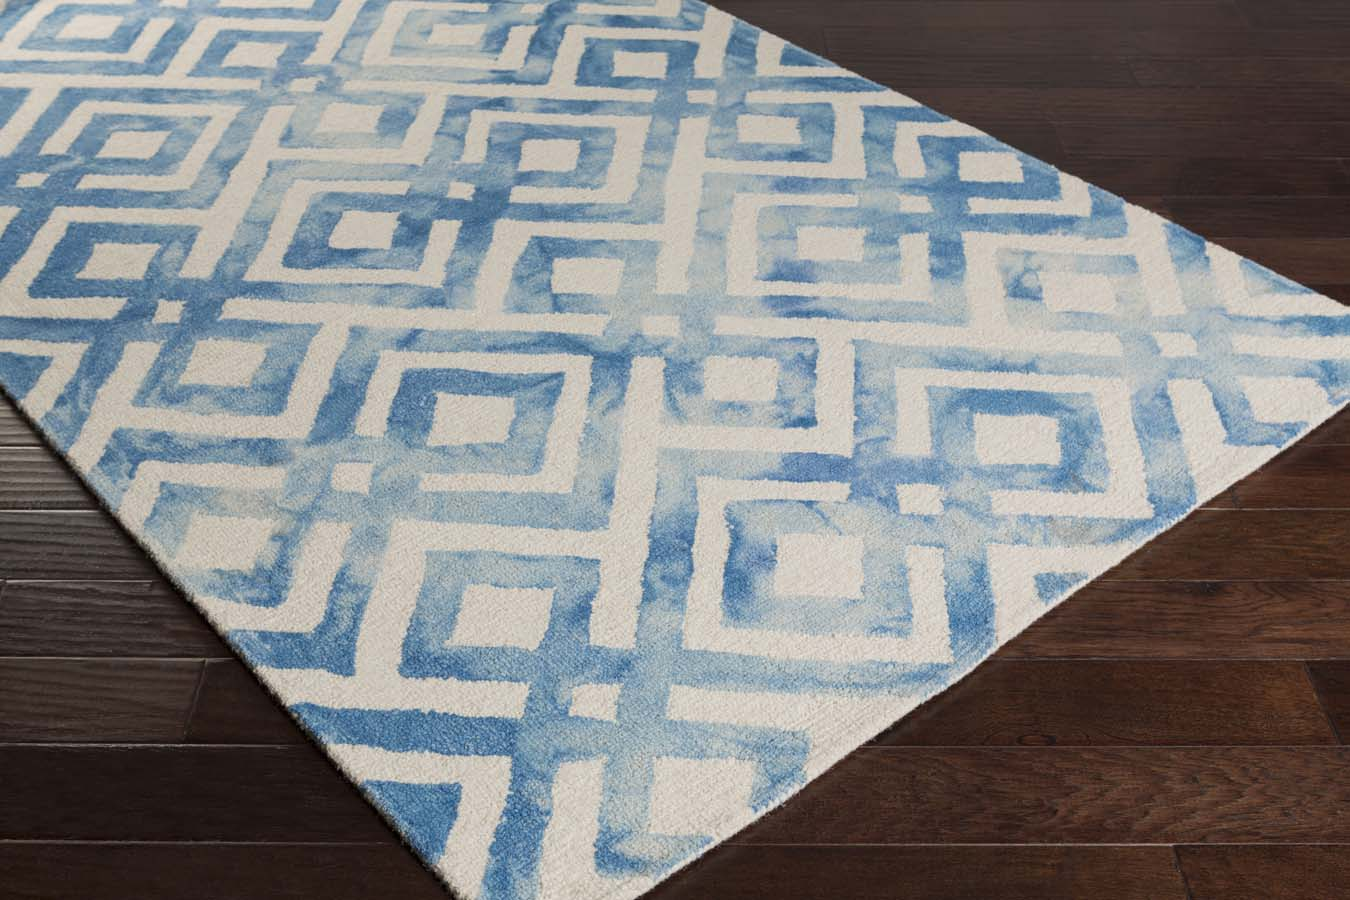 Patterned Area Rugs Amazing Ideas